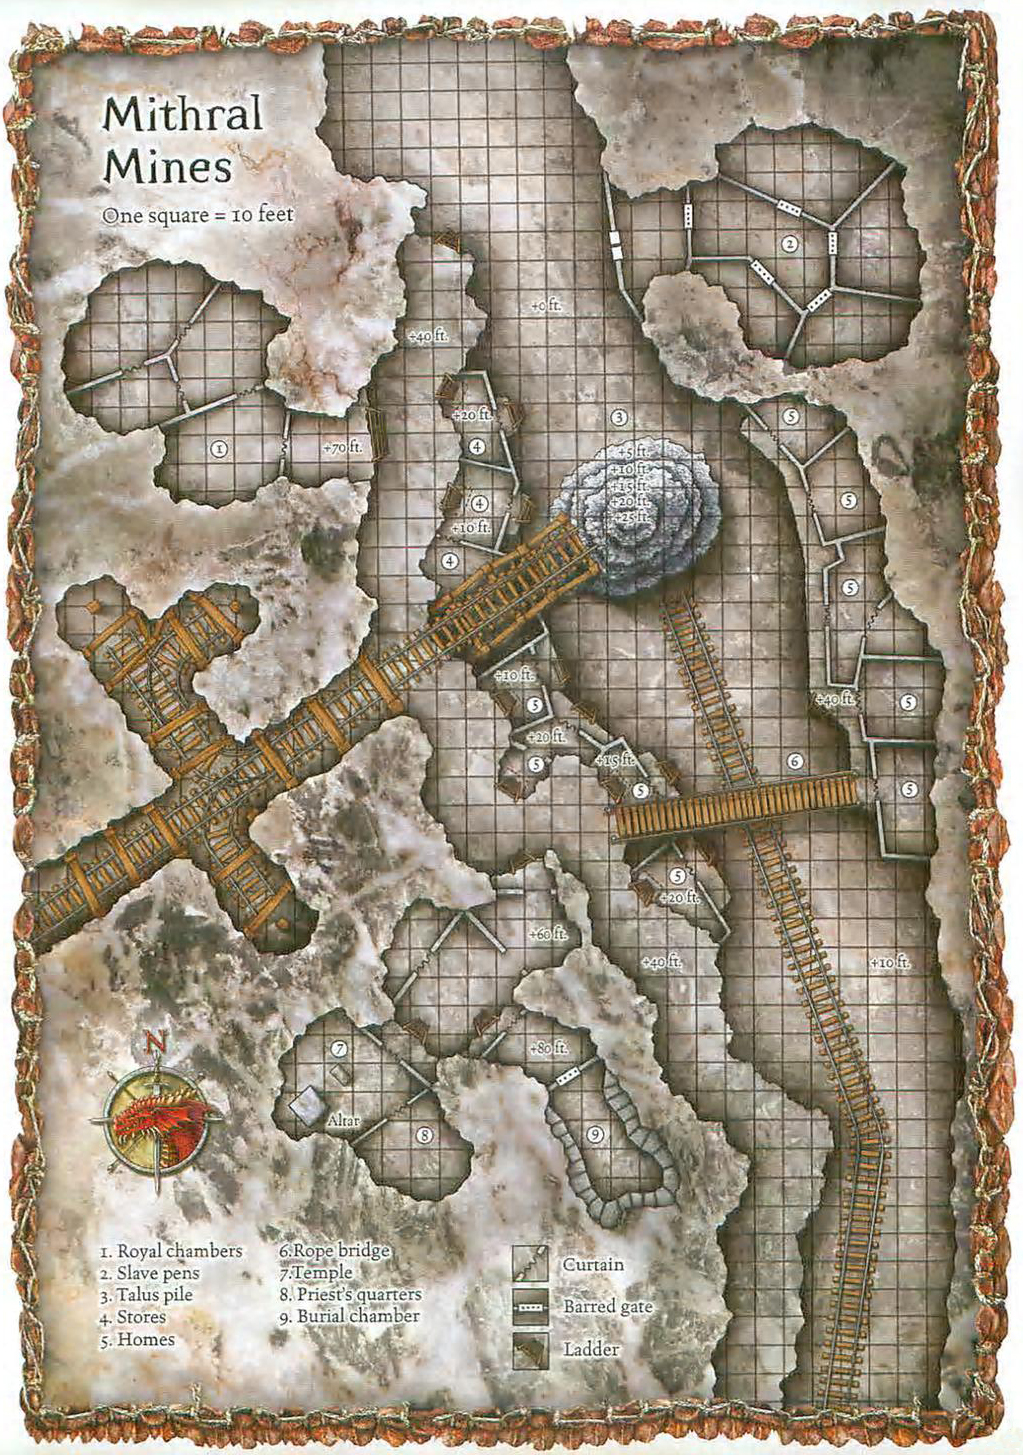 5E - Expanding Wave Echo Cave to bring PCs to 6th level